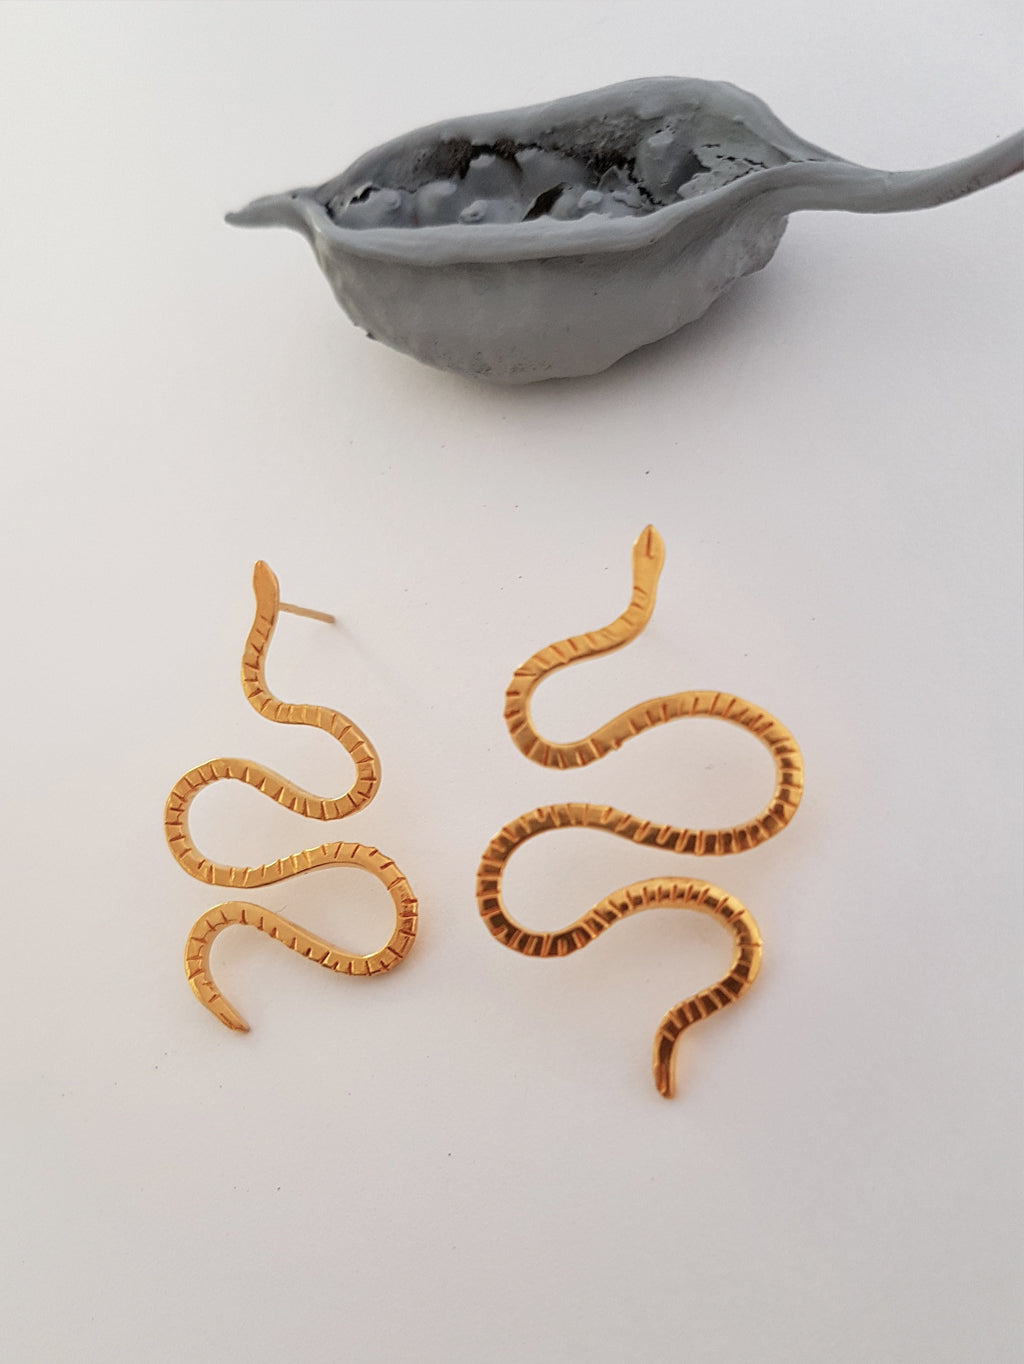 CERASTES SMALL SNAKE EARRINGS